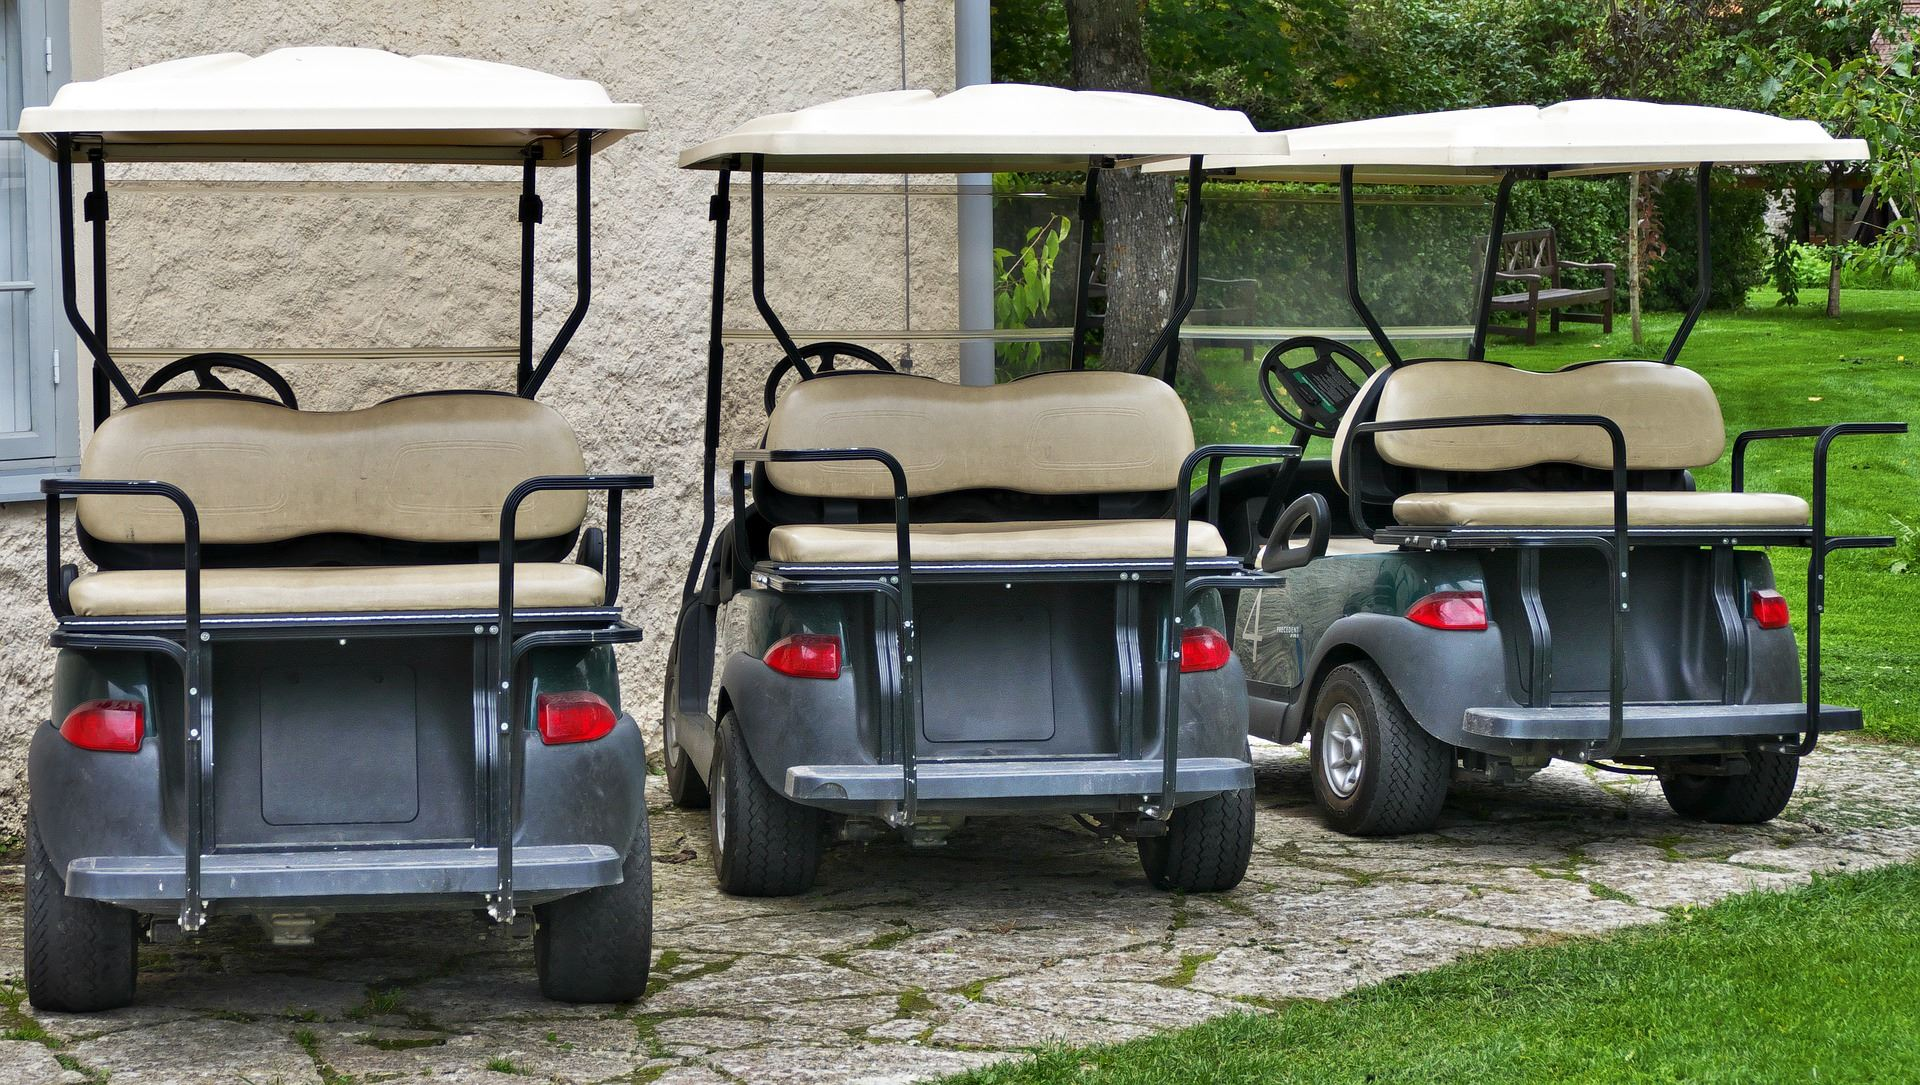 Three golf carts lined up